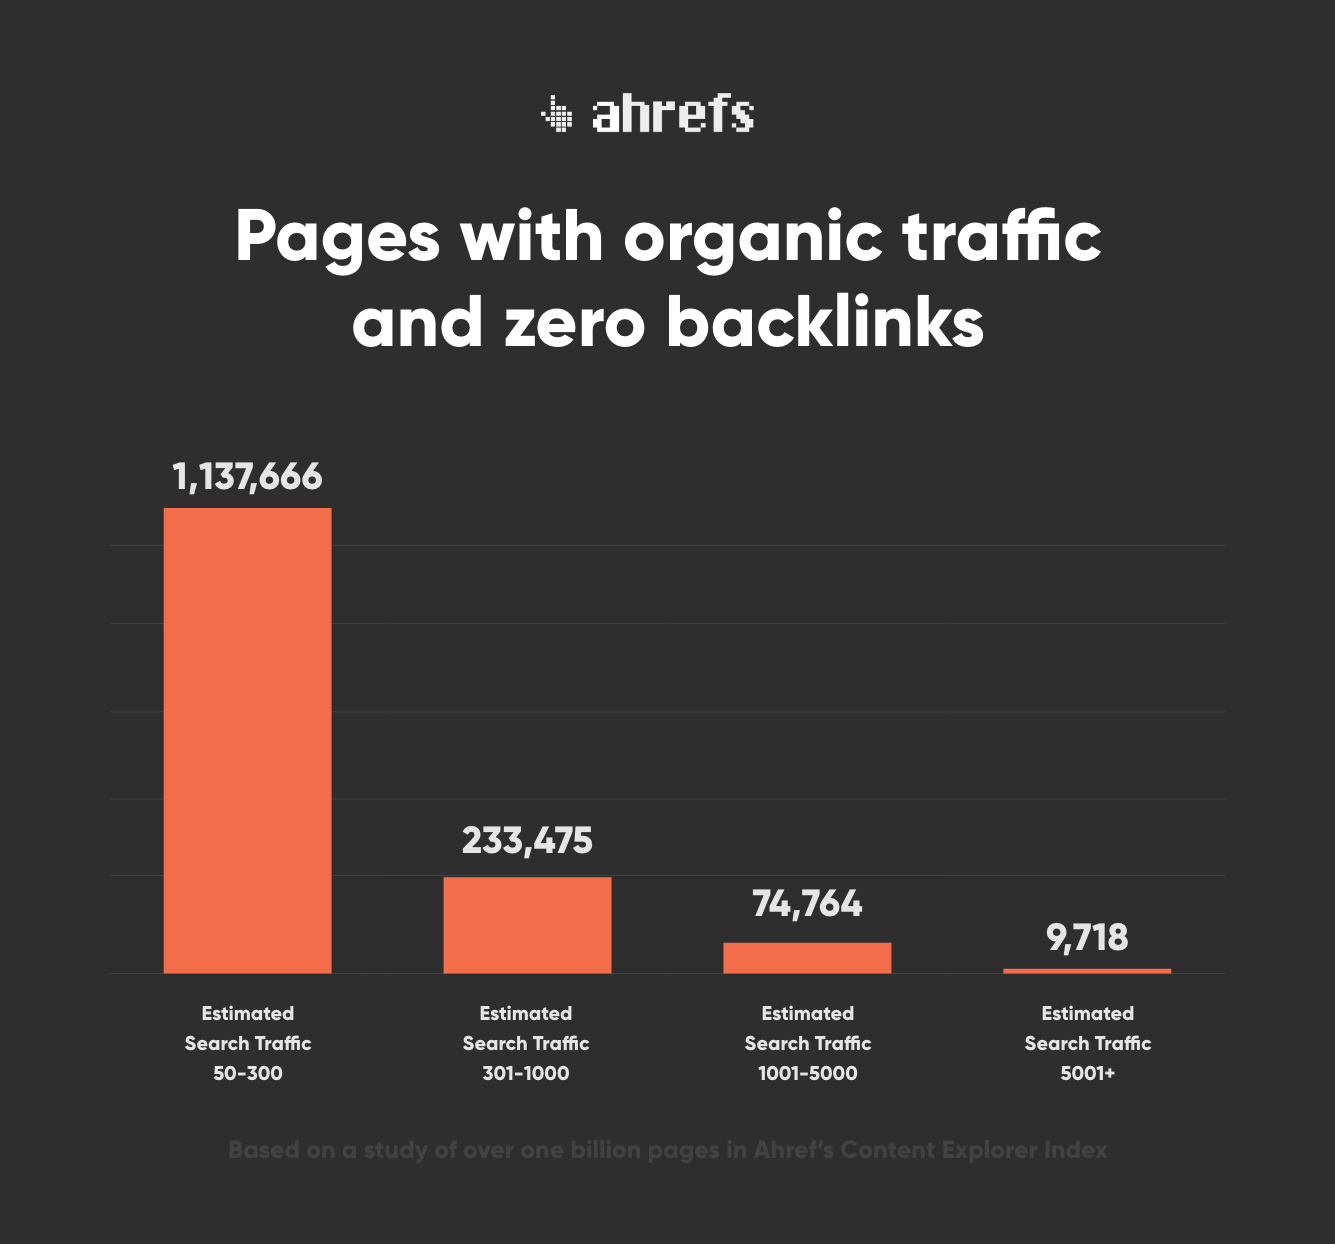 Pages with organic traffic and zero backlinks